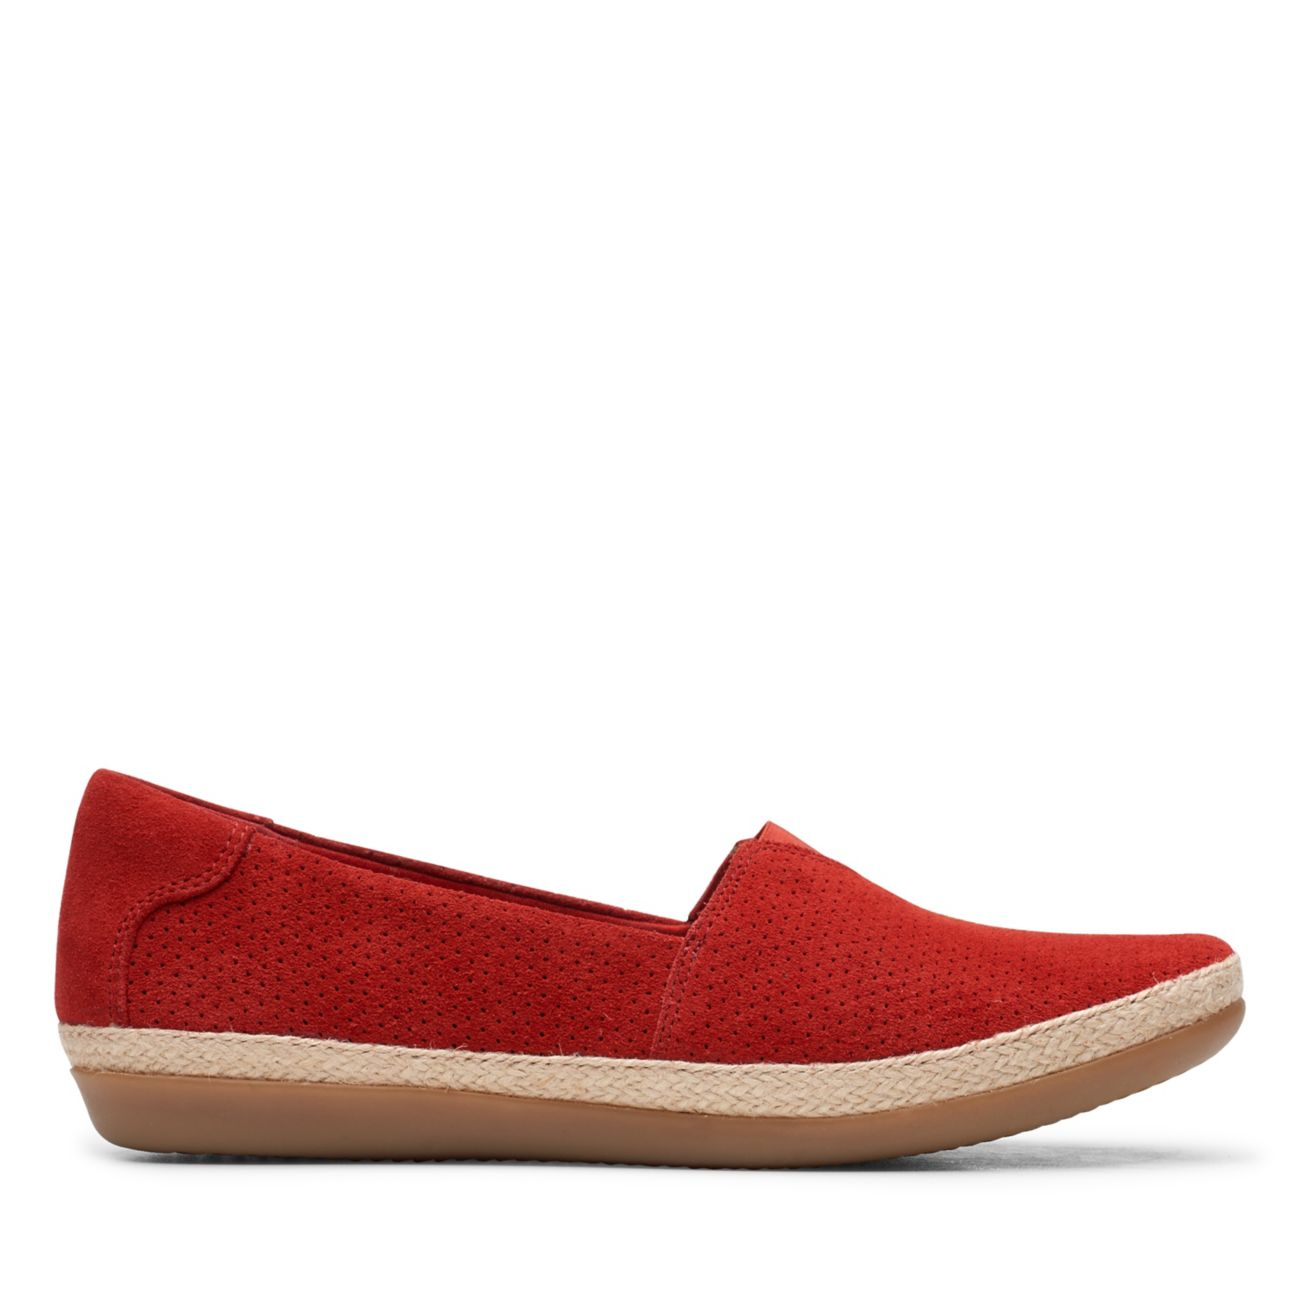 Danelly Sky Red Suede | Clarks